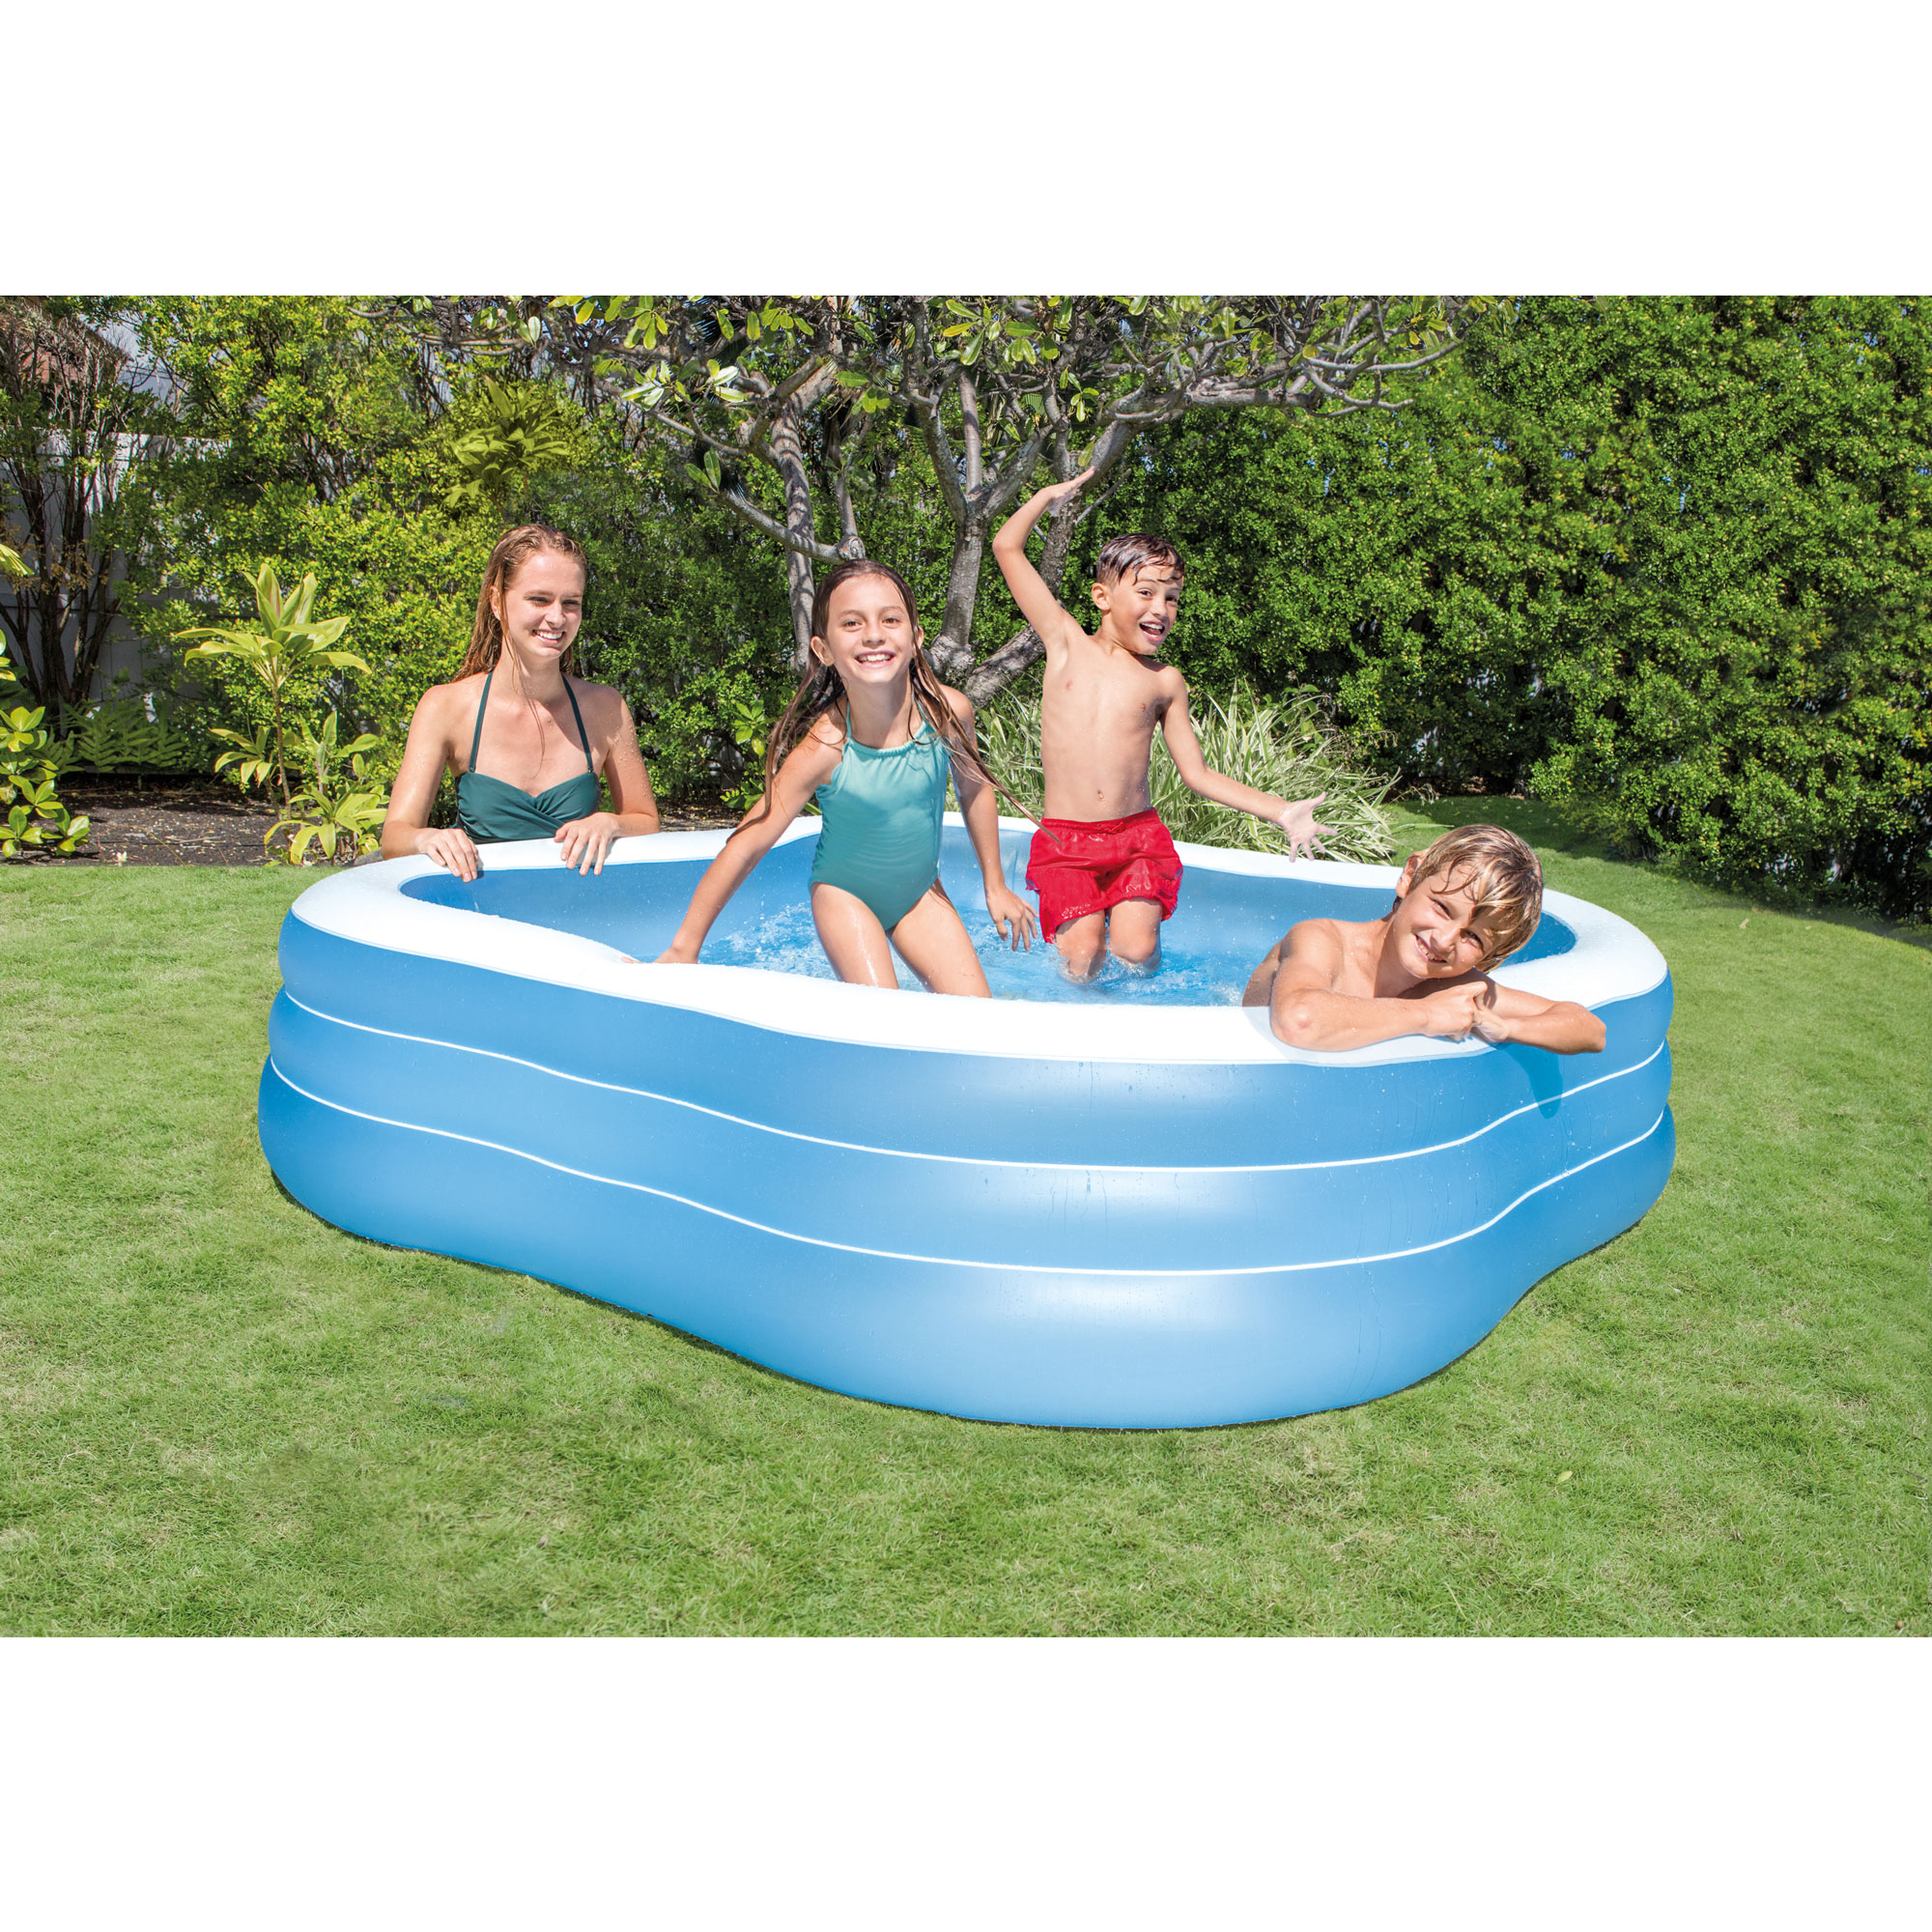 Intex swim center 90 x 90 x 22 inflatable summer family kids swimming pool ebay Intex inflatable swimming pool